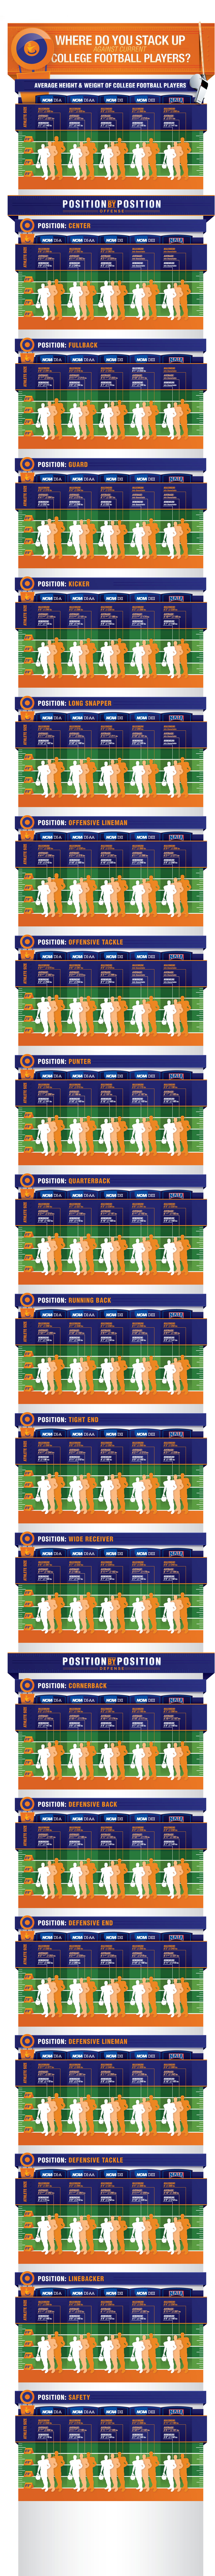 _ATHNET_FOOTBALLSIZES_EXPANDED